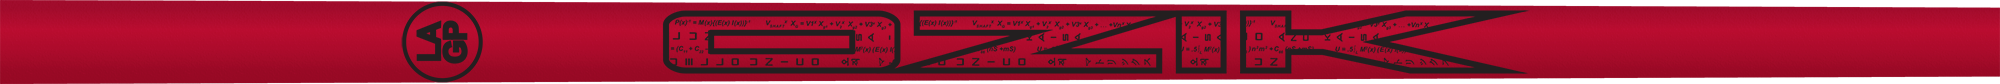 Ozik White Tie: Candy Apple Red Black Matte - Wood 60 R